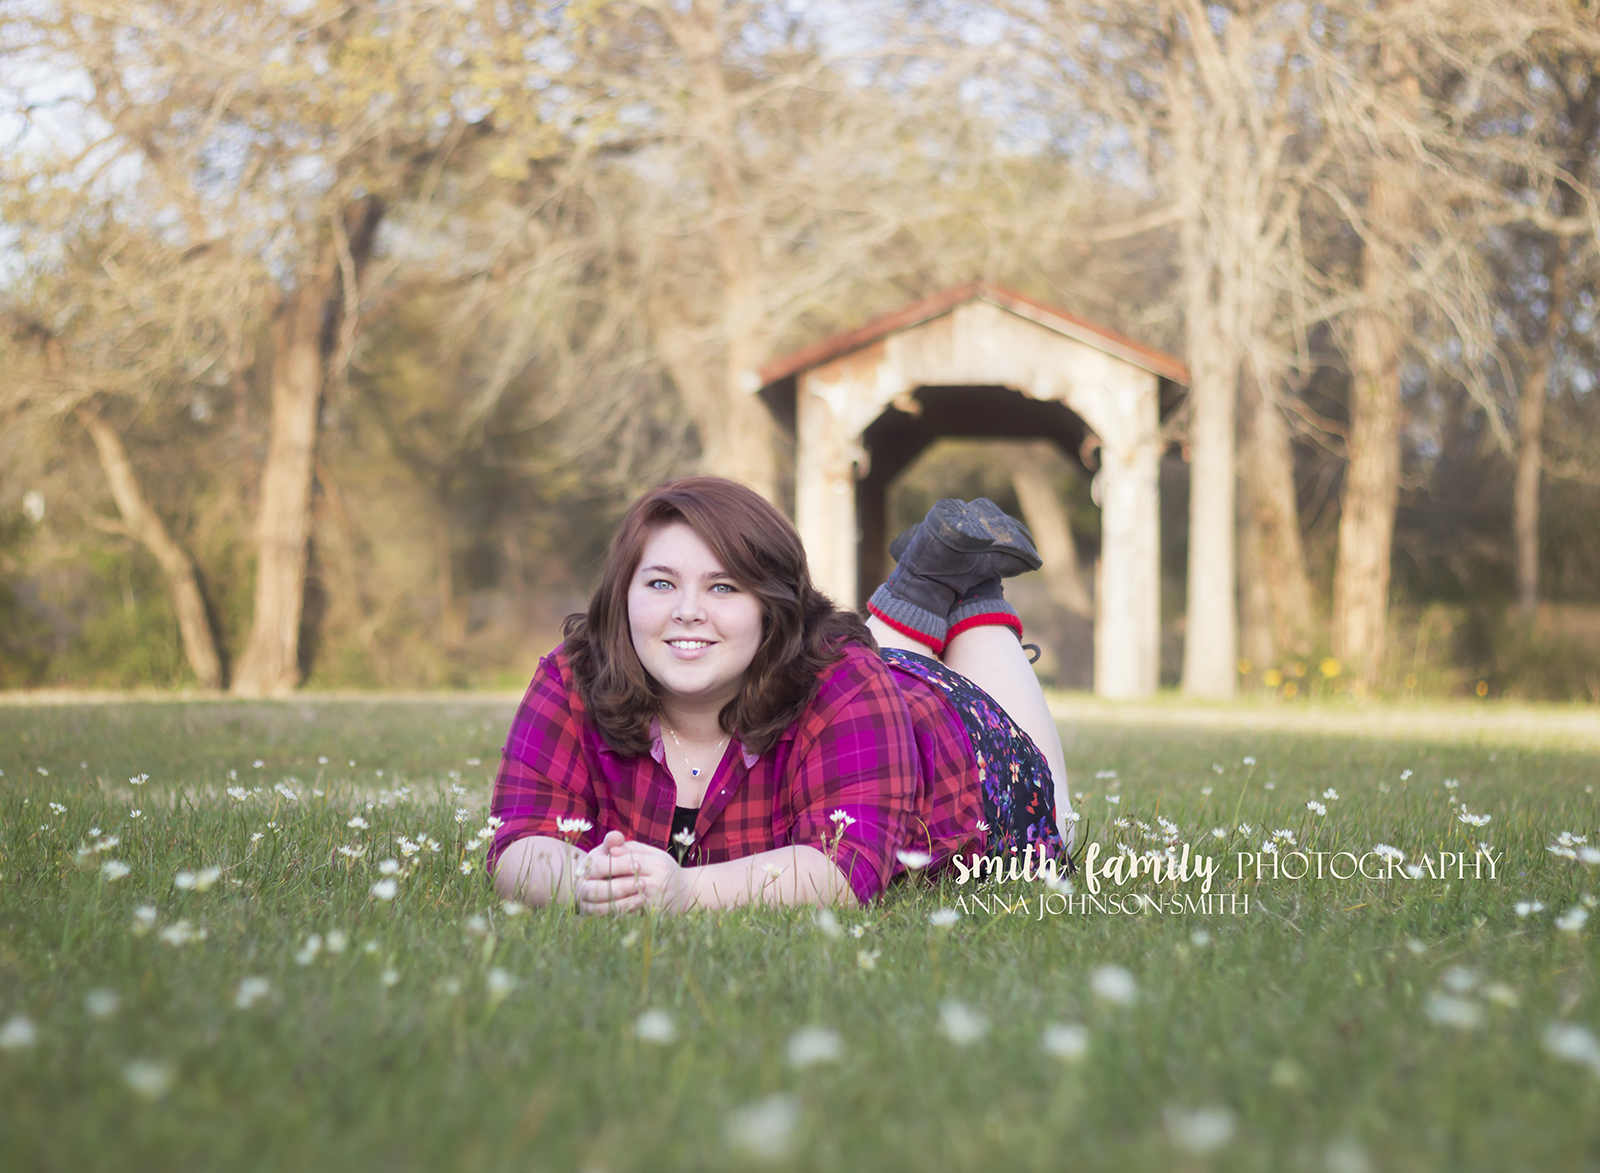 covered_bridge_smith_family_photography